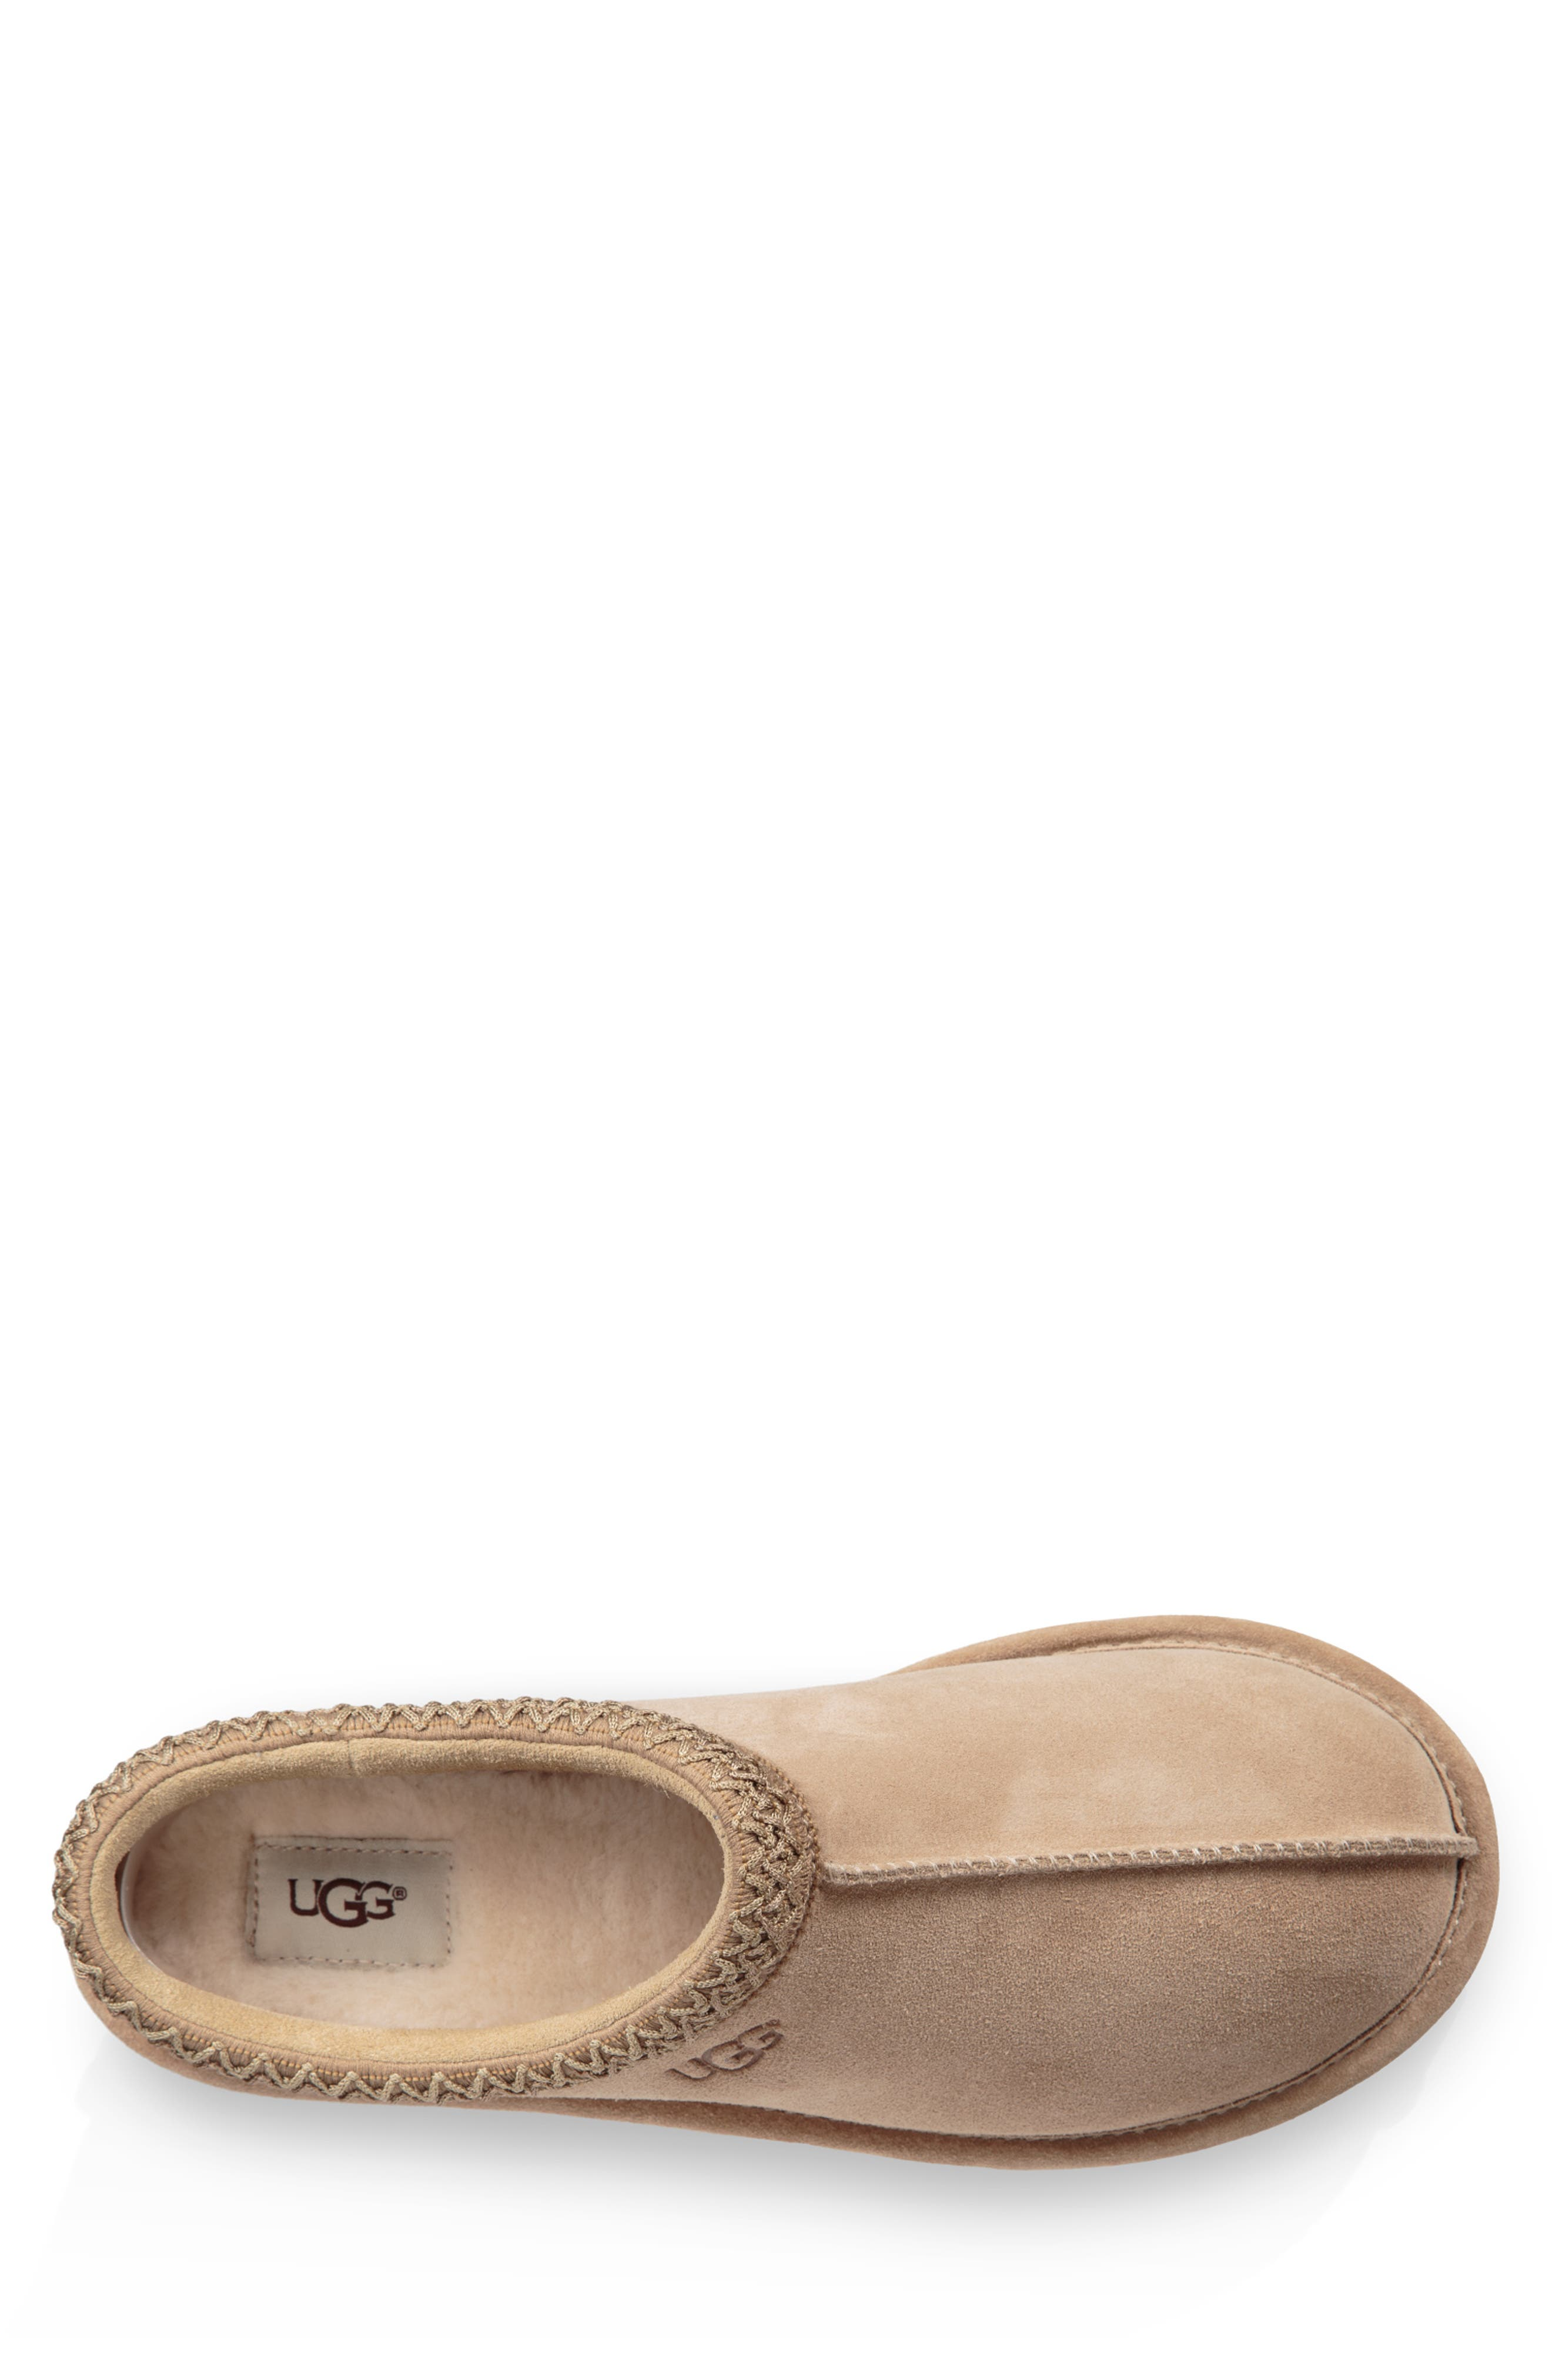 Tasman Pinnacle Indoor/Outdoor Horween Slipper,                             Alternate thumbnail 4, color,                             BEIGE